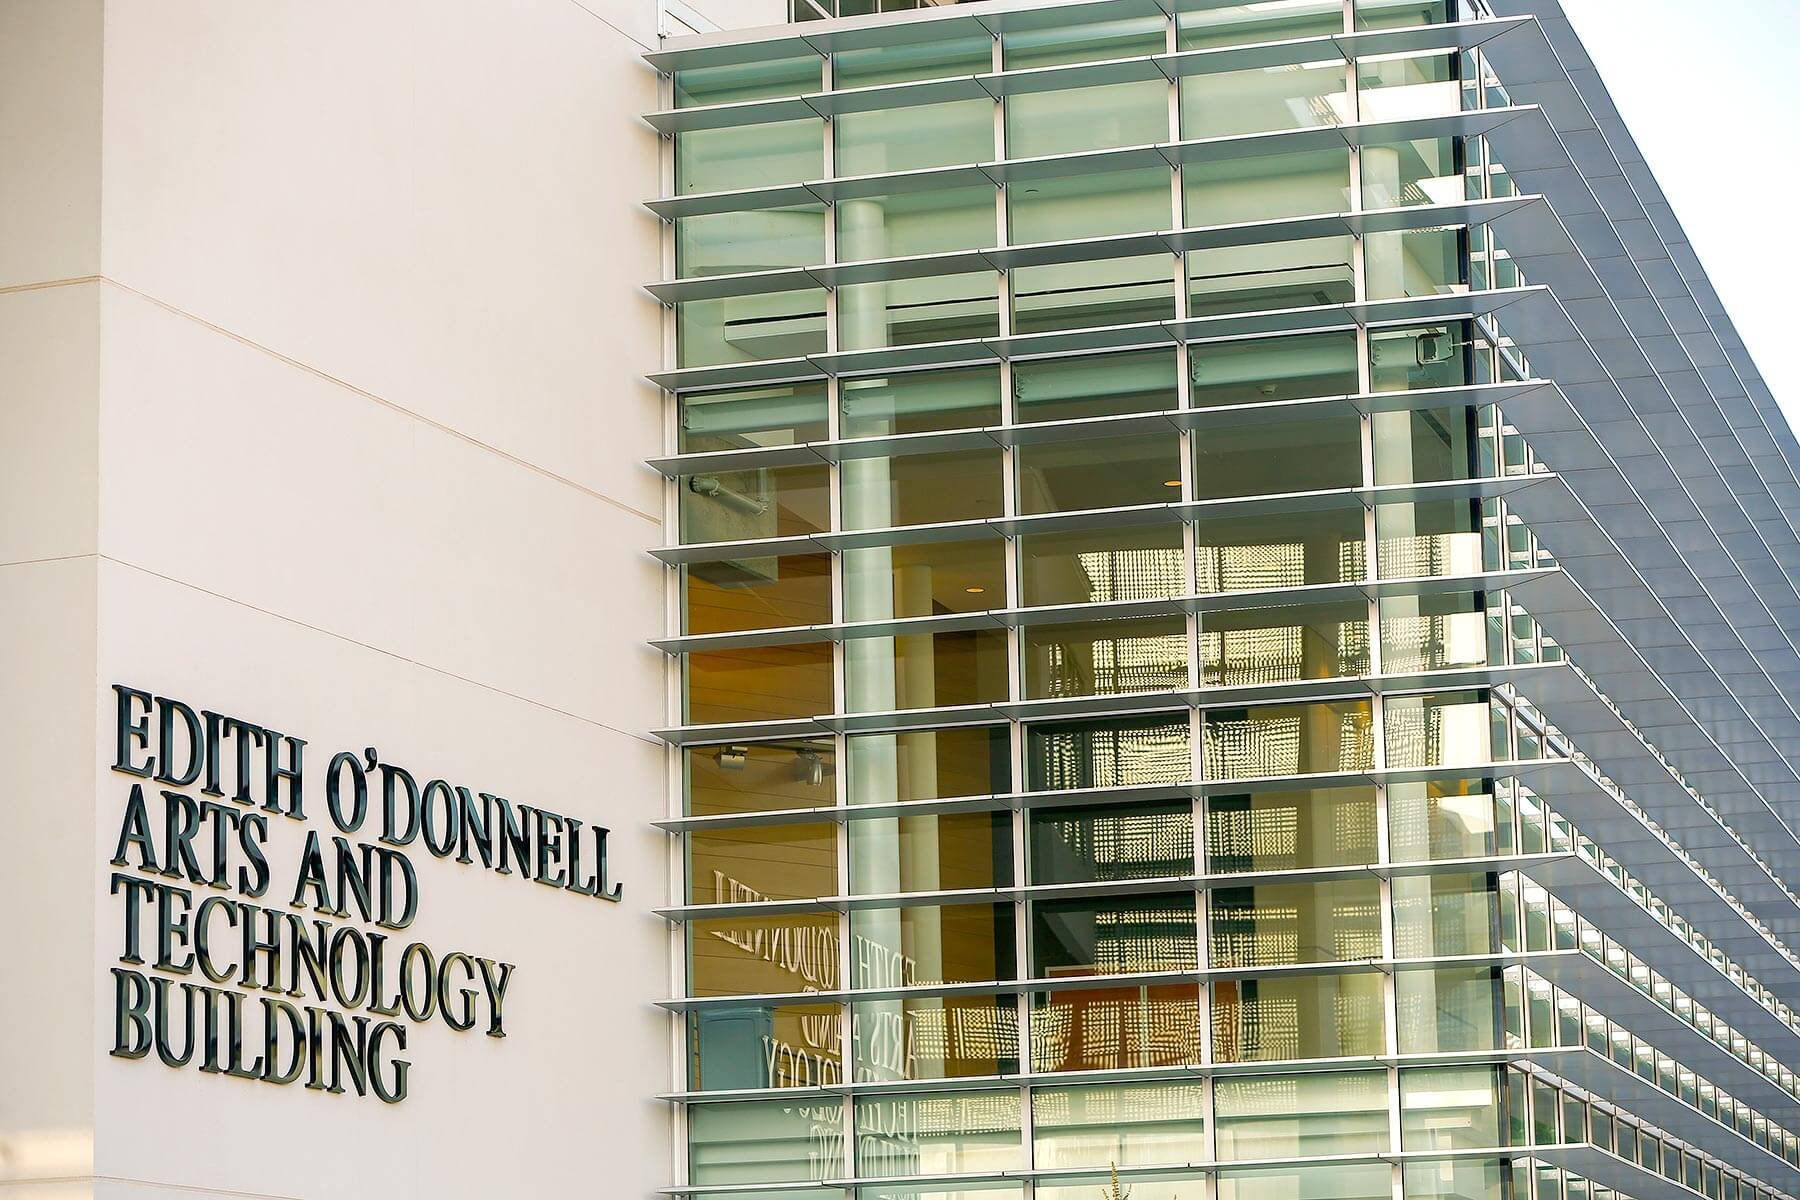 exterior signage of Edith O'Donnell Arts and Technology Building, slide 1